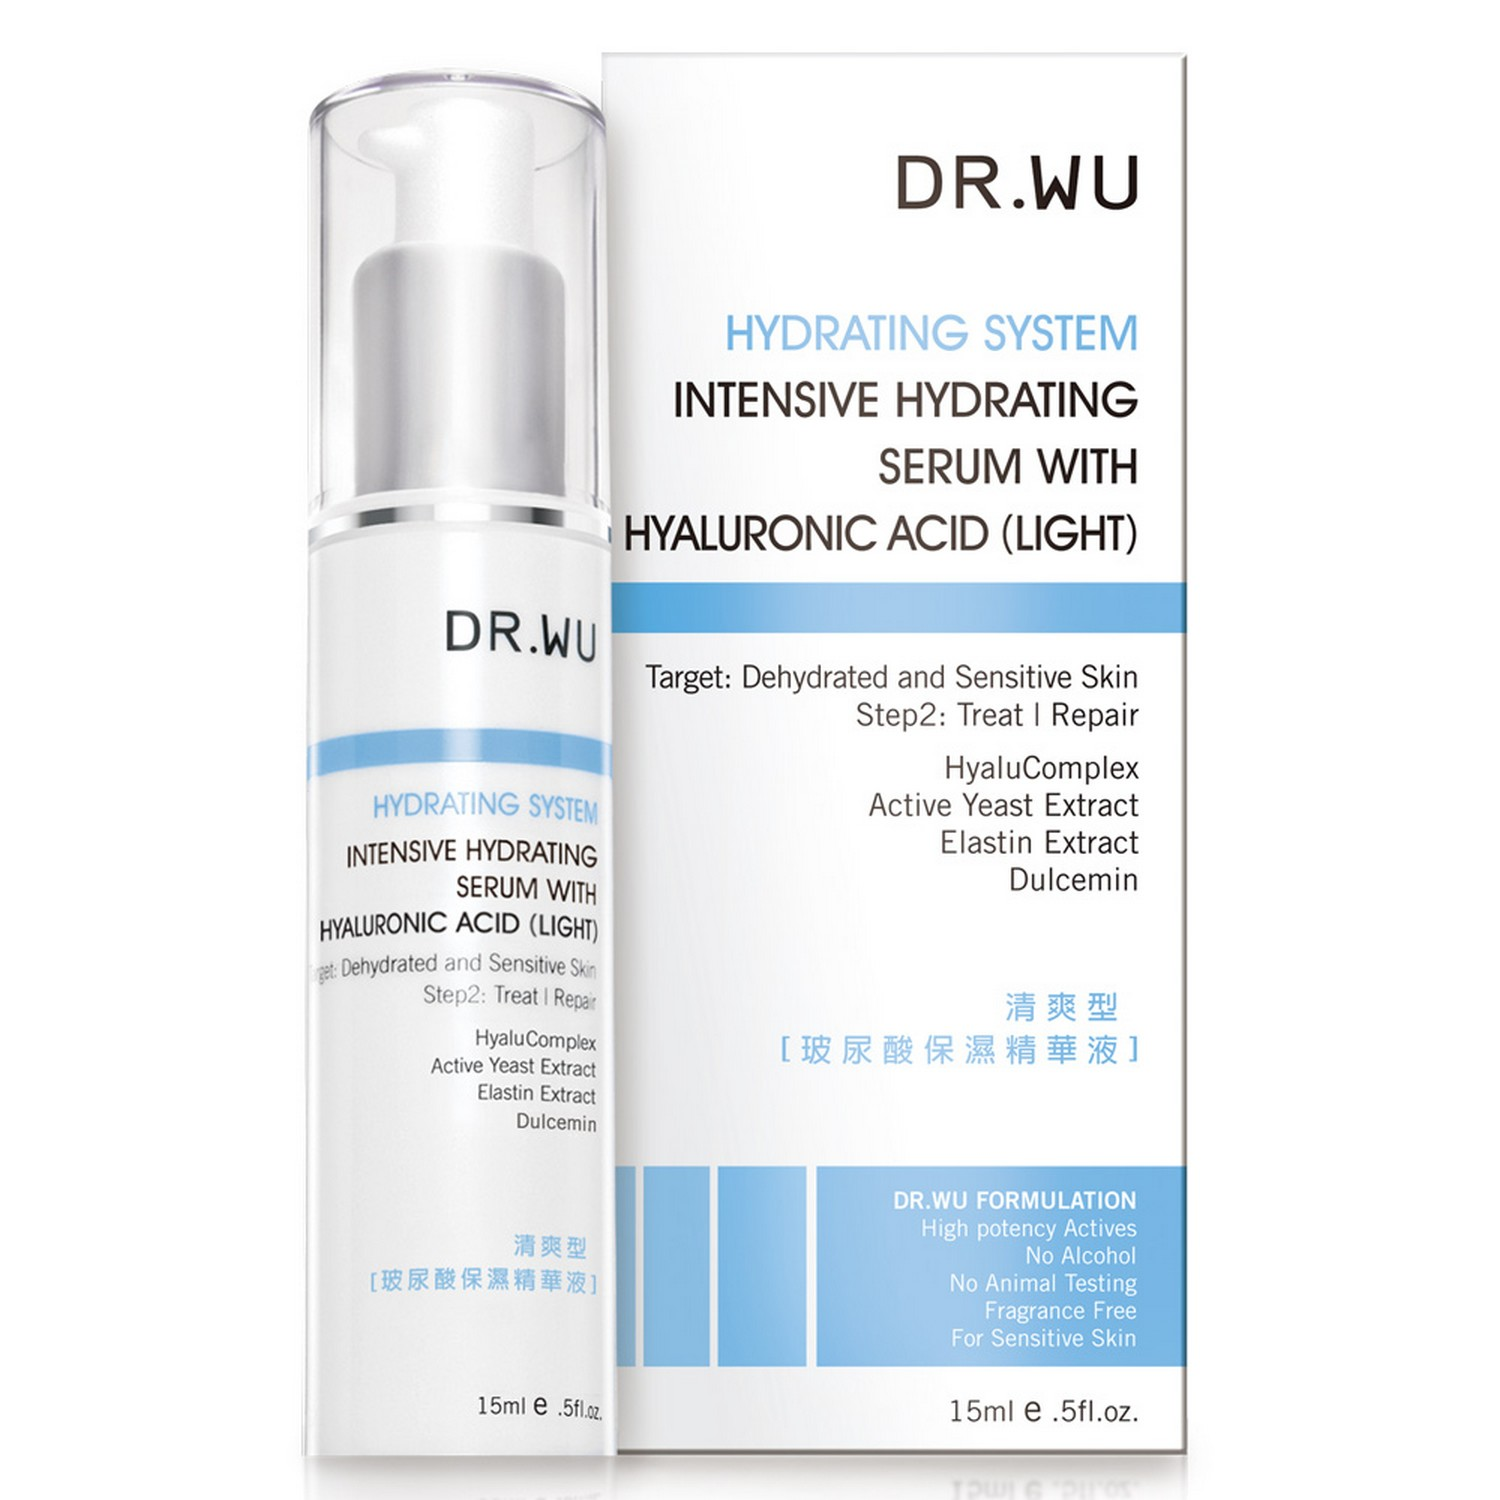 Dr. Wu INTENSIVE HYDRATING SERUM WITH HYALURONIC ACID (15 ml / 0.5 fl oz)